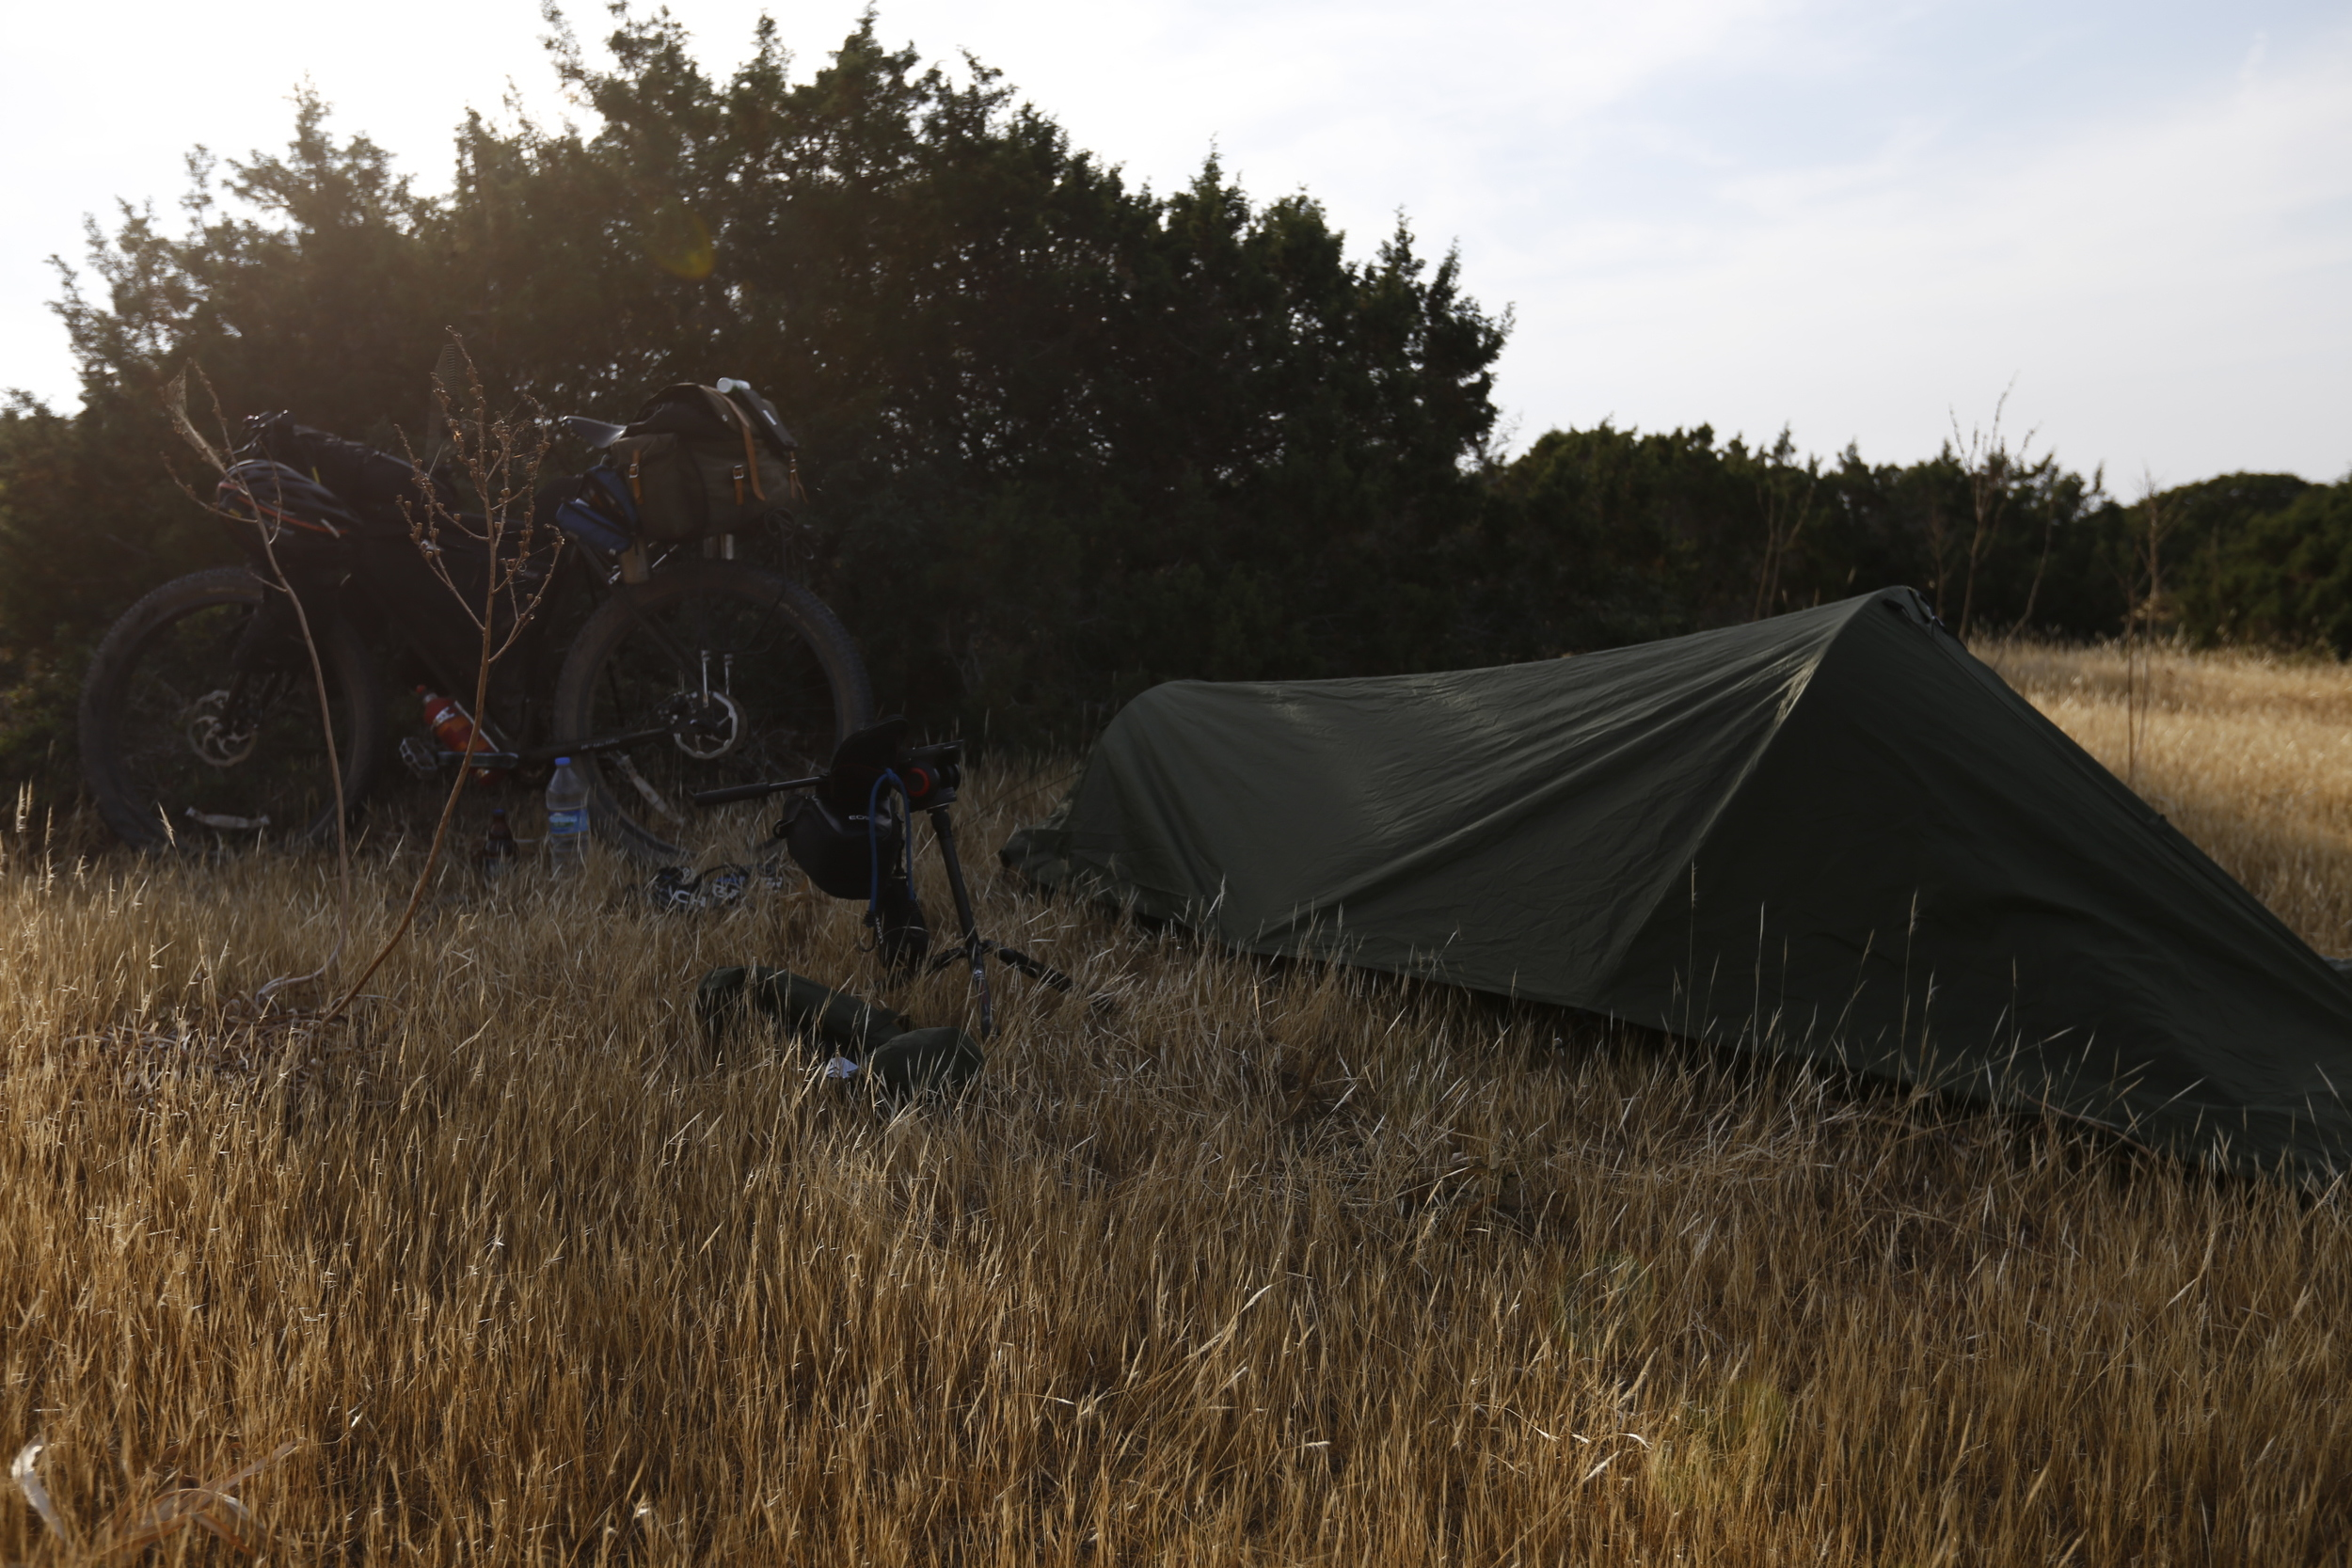 The   Snupak Ionosphere   has superb ventilation, more like a tarp, than a tent.